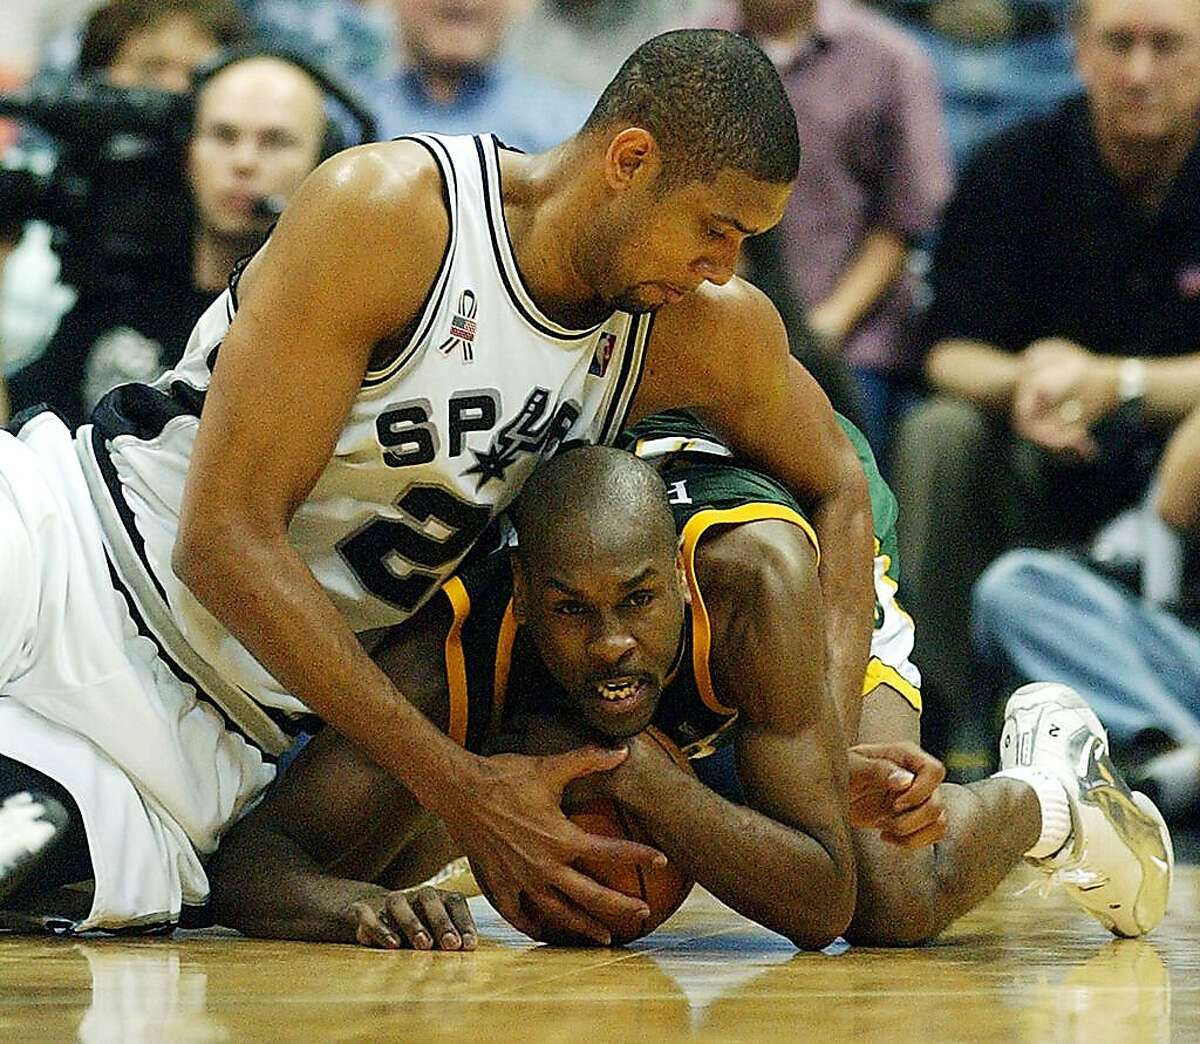 Spurs Tim Duncan and Seattle Gary Payton struggle for the ball during fourth period action at the Alamodome Monday April 22, 2002. WILLIAM LUTHER/STAFF